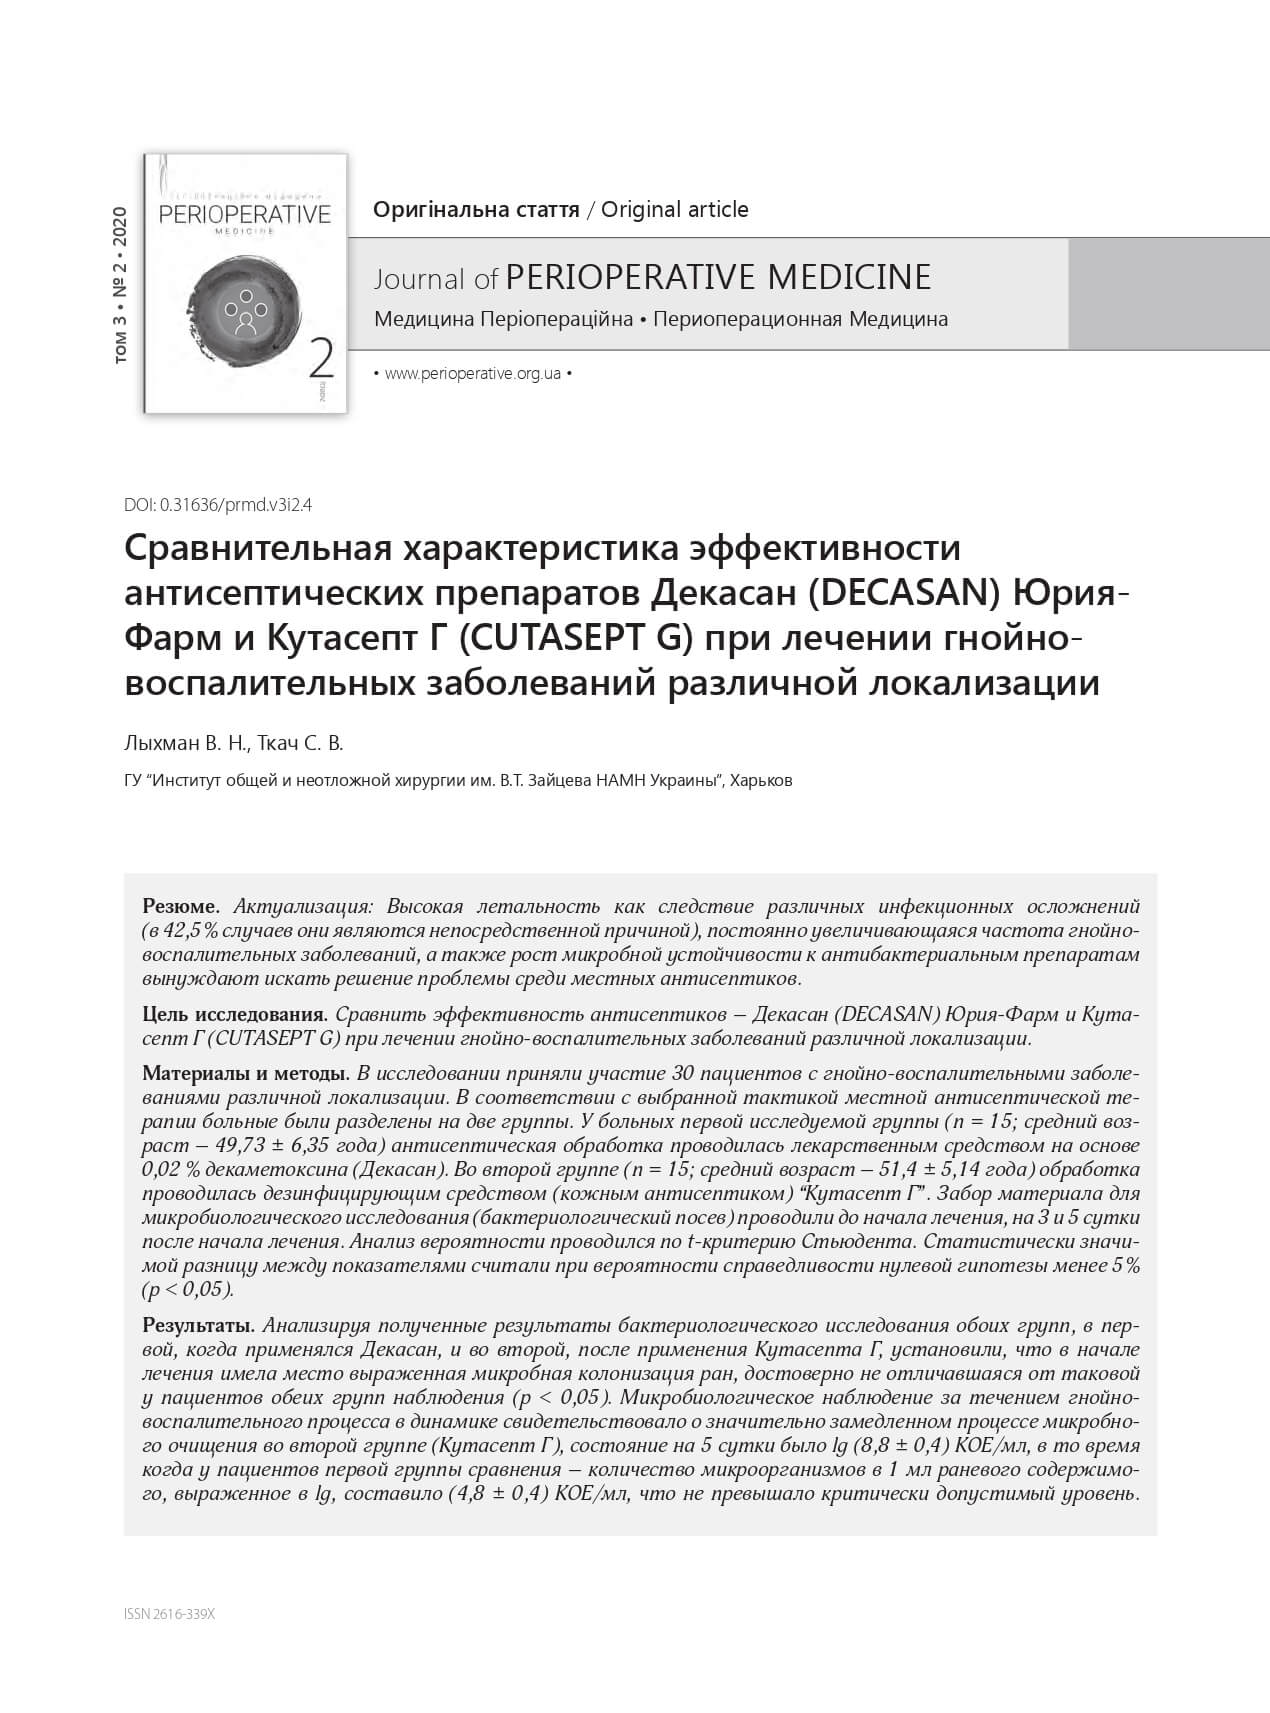 Efficacy comparative characteristics of antiseptic DECASAN Yuria-Pharm and CUTASEPT G in the treatment of purulent inflammatory diseases of various localization